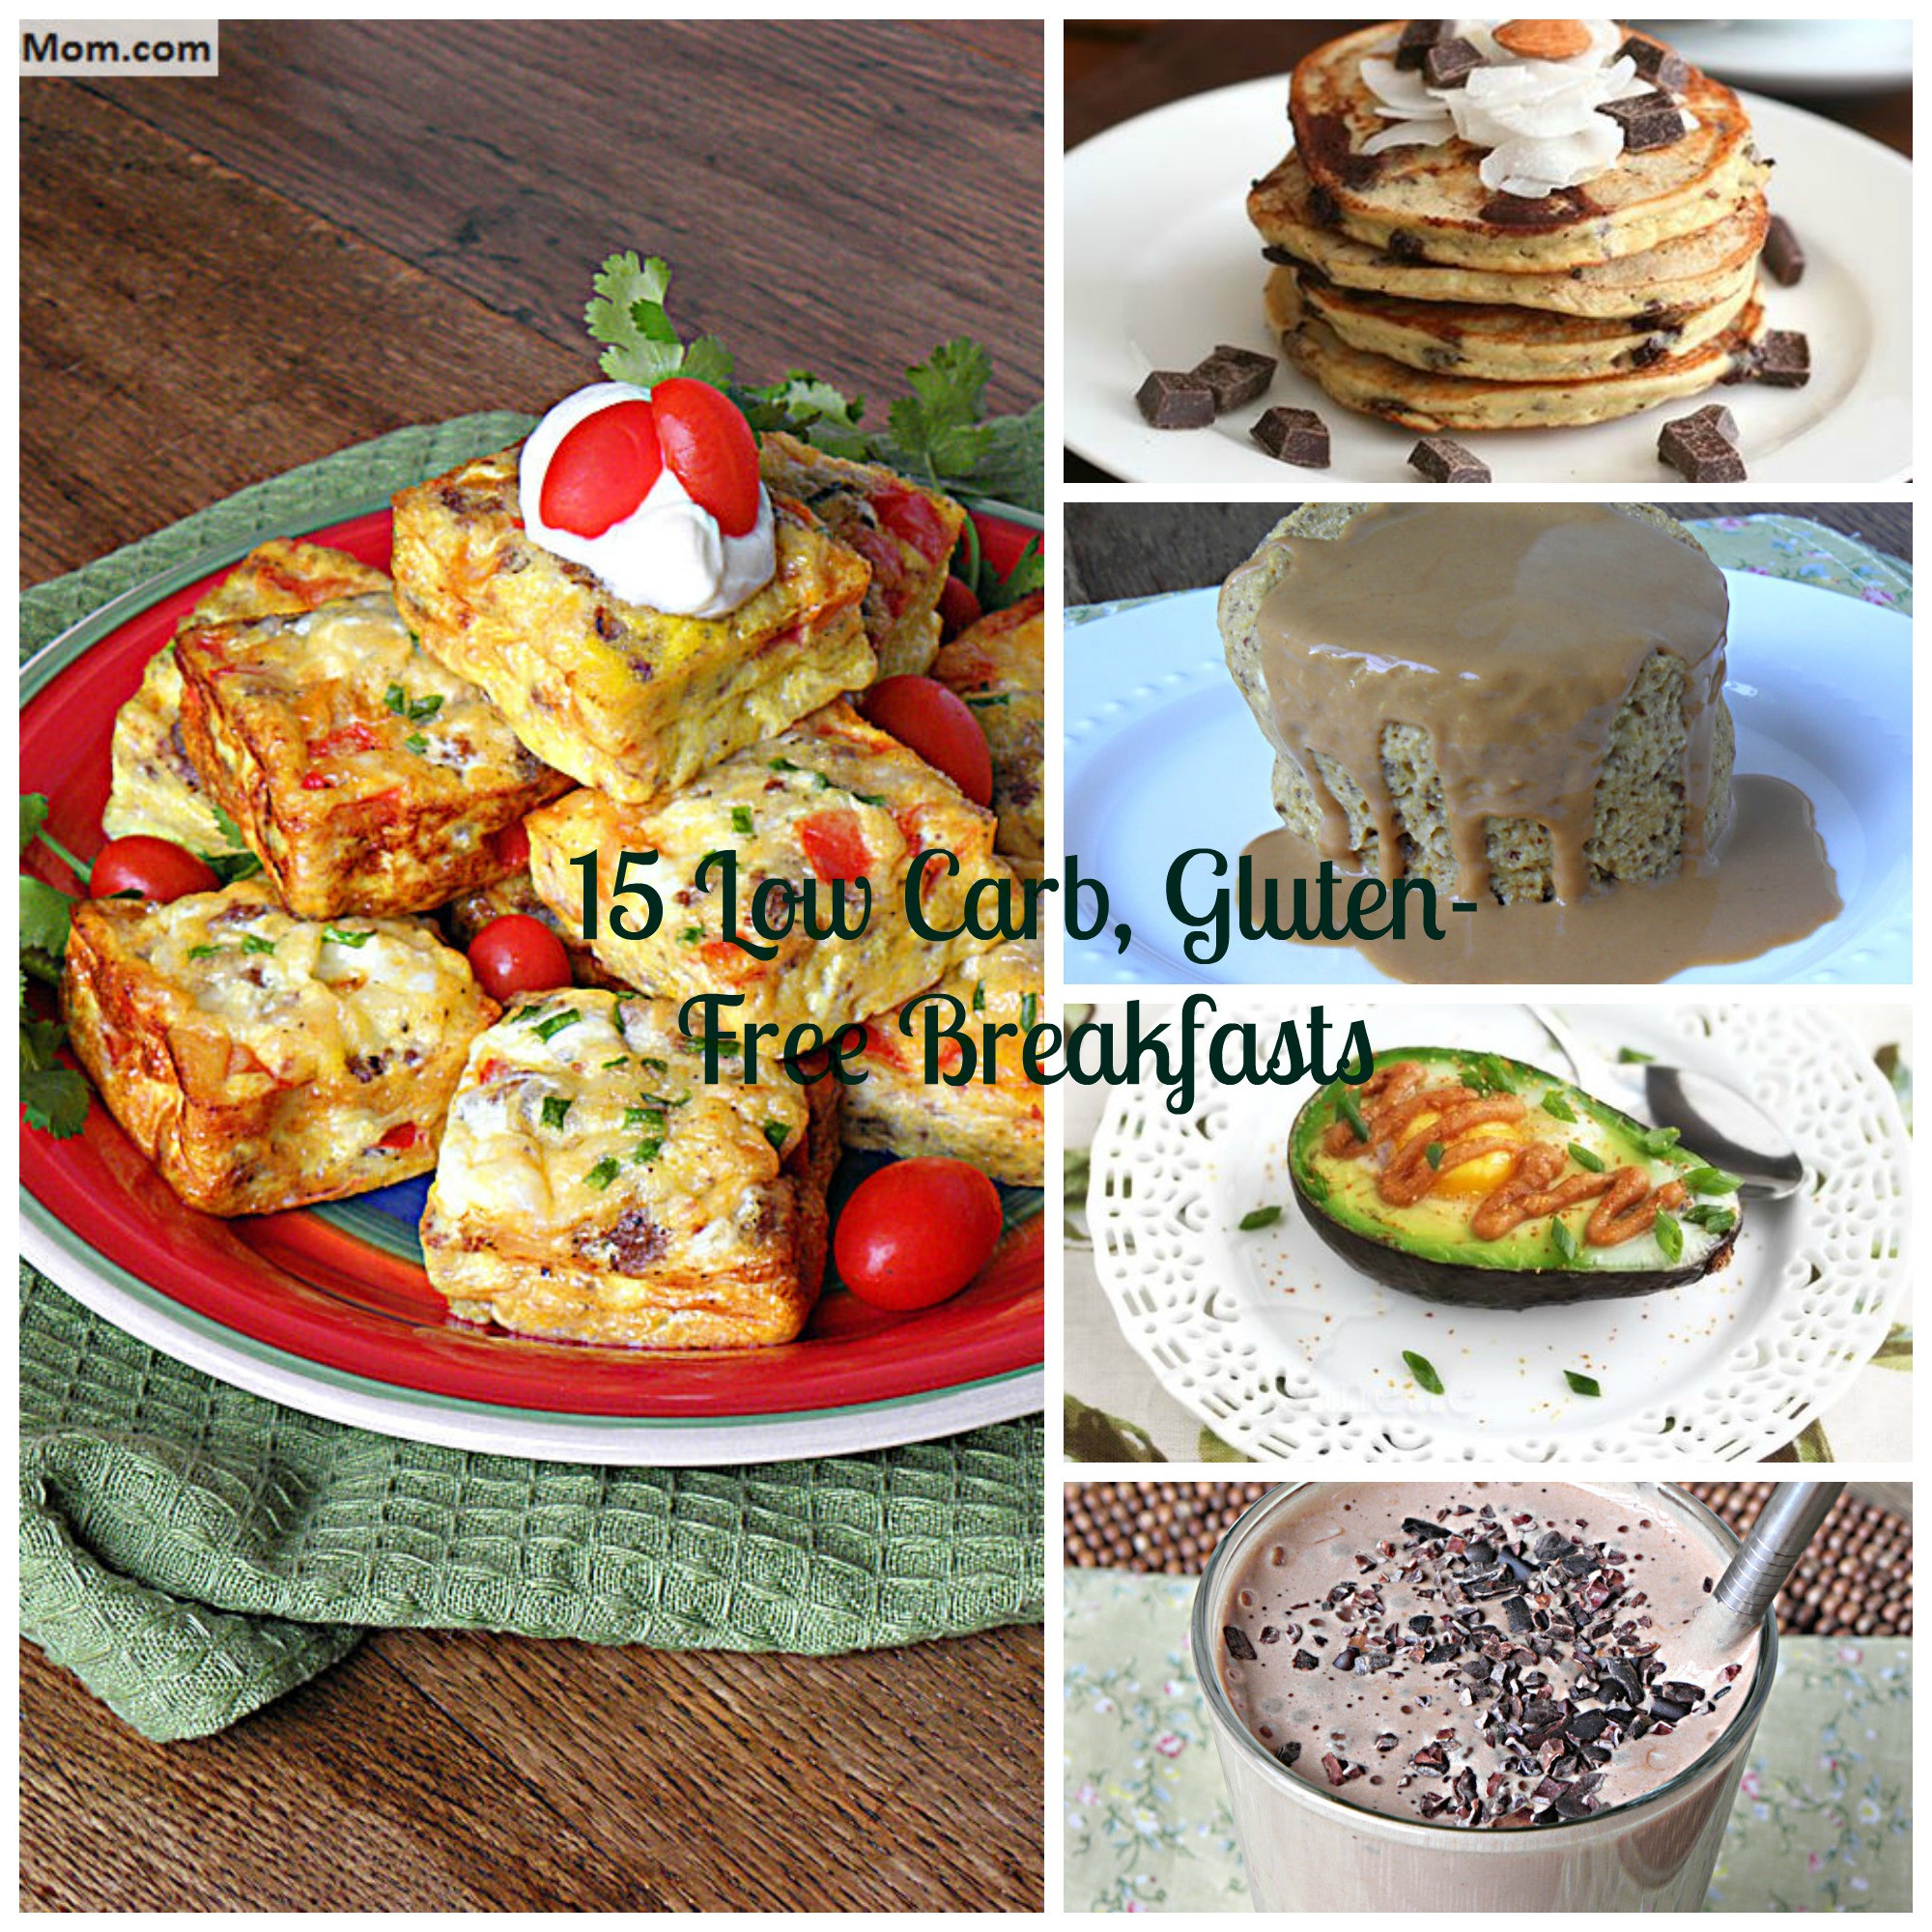 Diabetic Breakfast Recipes Low Carb  15 Gluten Free Low Carb & Diabetic Friendly Breakfast Recipes